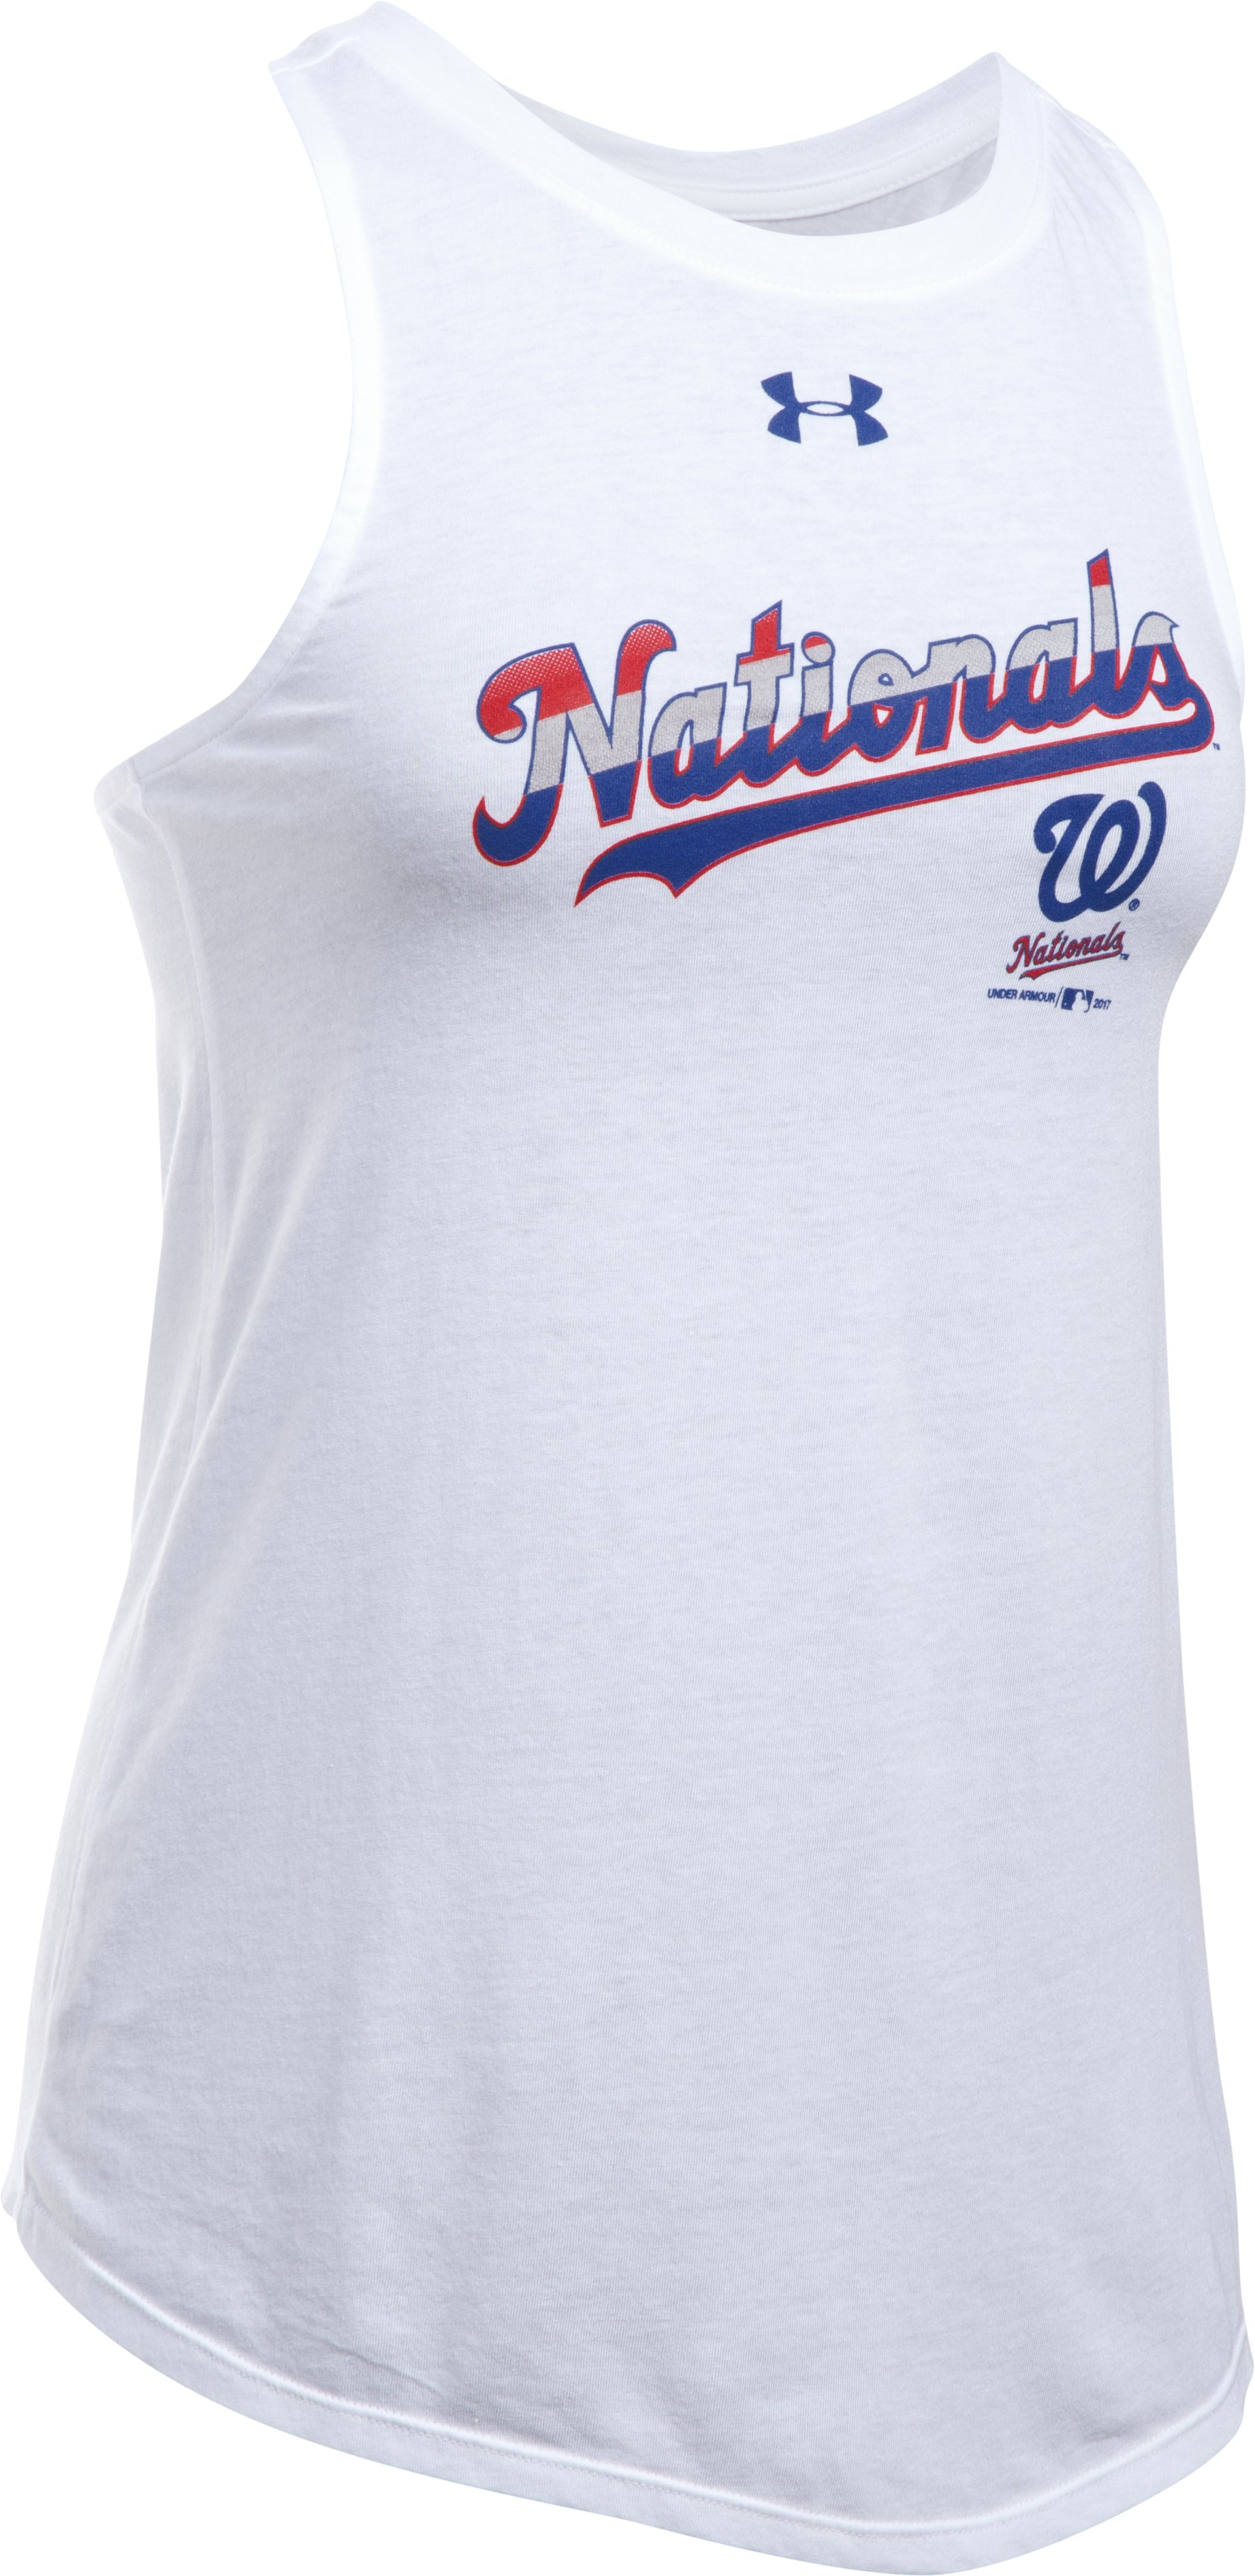 Women's Washington Nationals Cutout Tank, White,